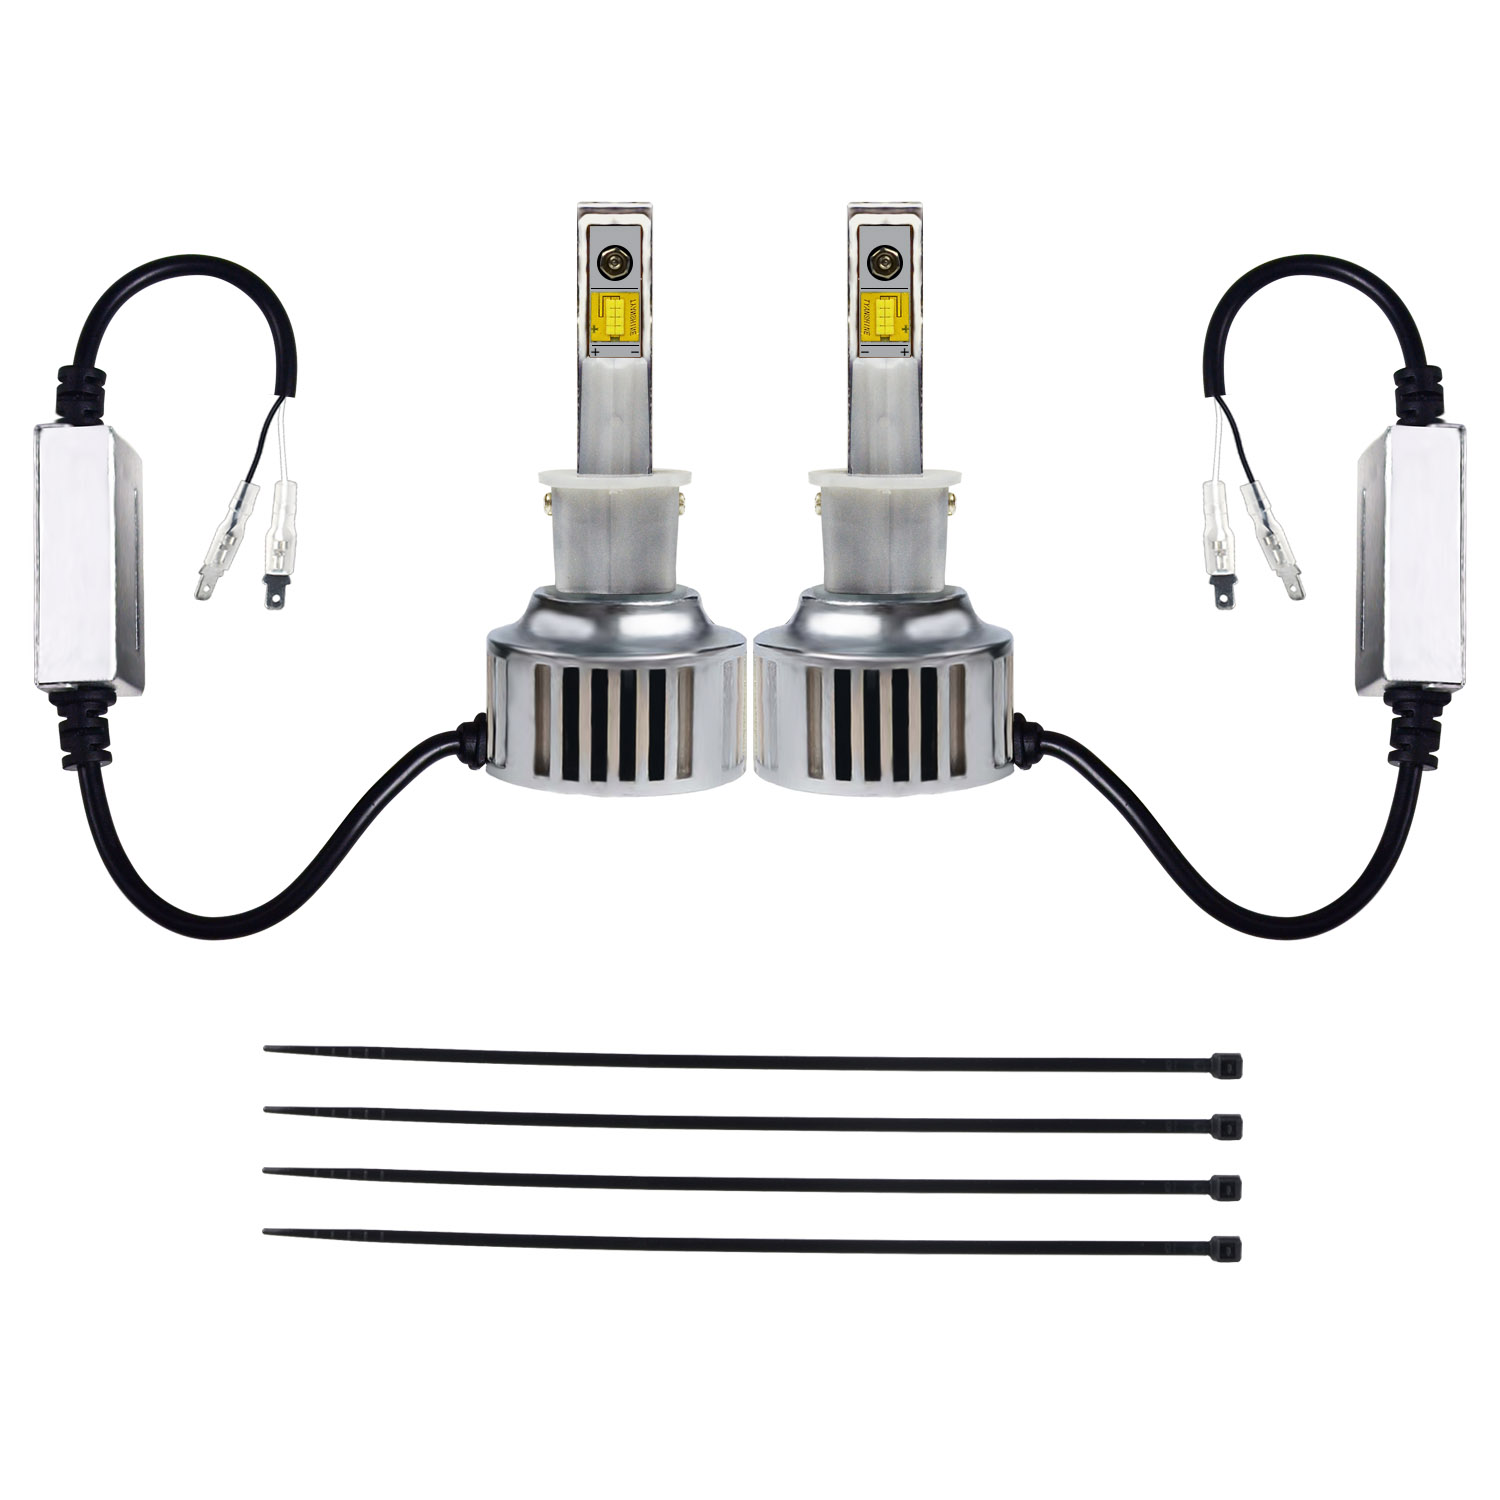 KAWELL LED Headlight Bulbs LED Headlight Conversion Kit - H3 - 80W 6,400LM 6500 Cool White OSRAM LED - Replacing H1 Halogen & HID Bulbs - 2 Yr Warranty